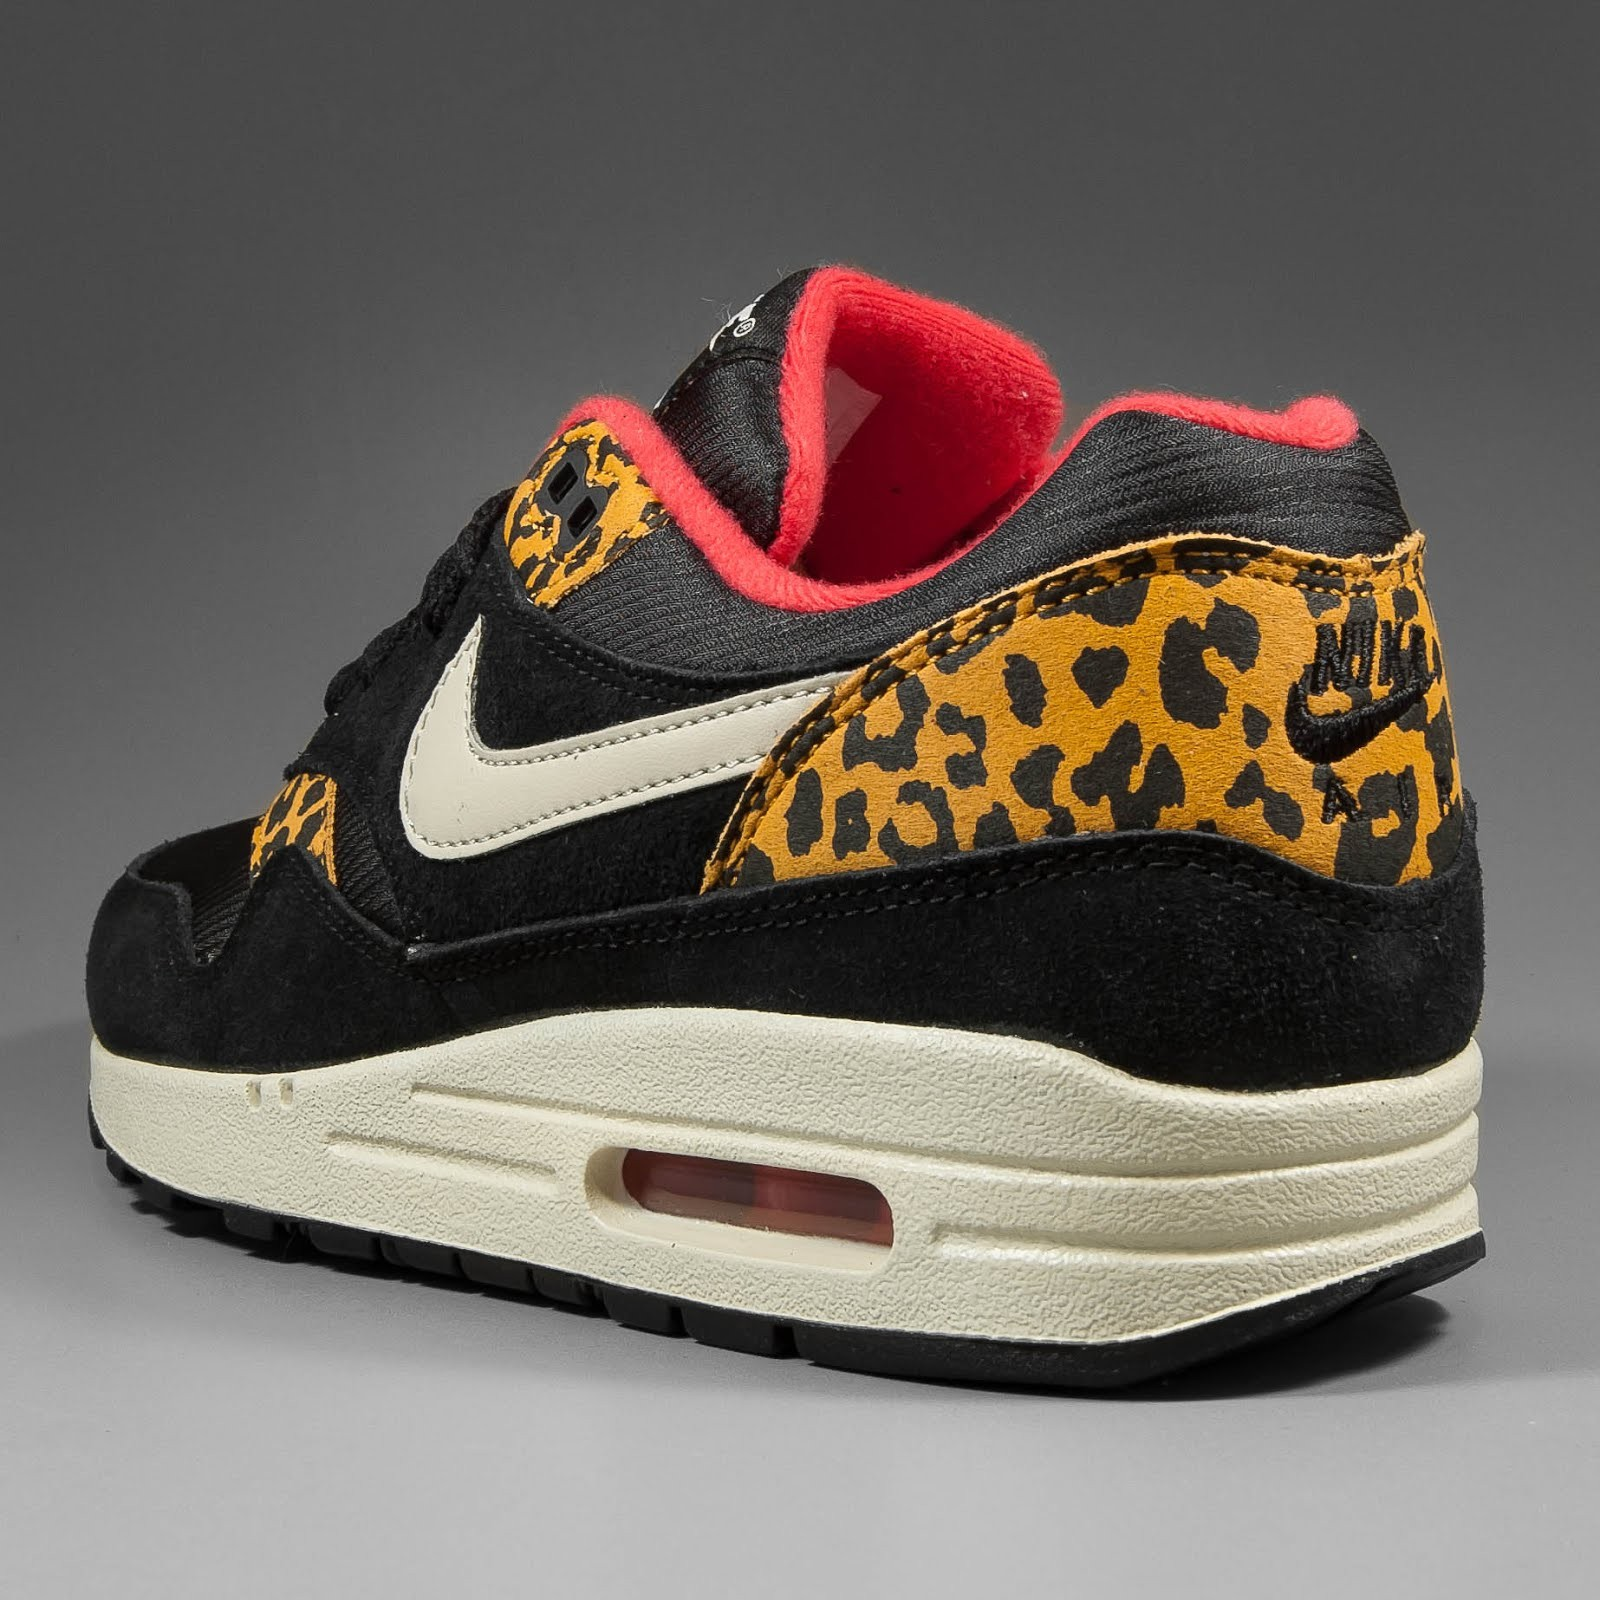 nike air max 1 leopard kaufen. Black Bedroom Furniture Sets. Home Design Ideas